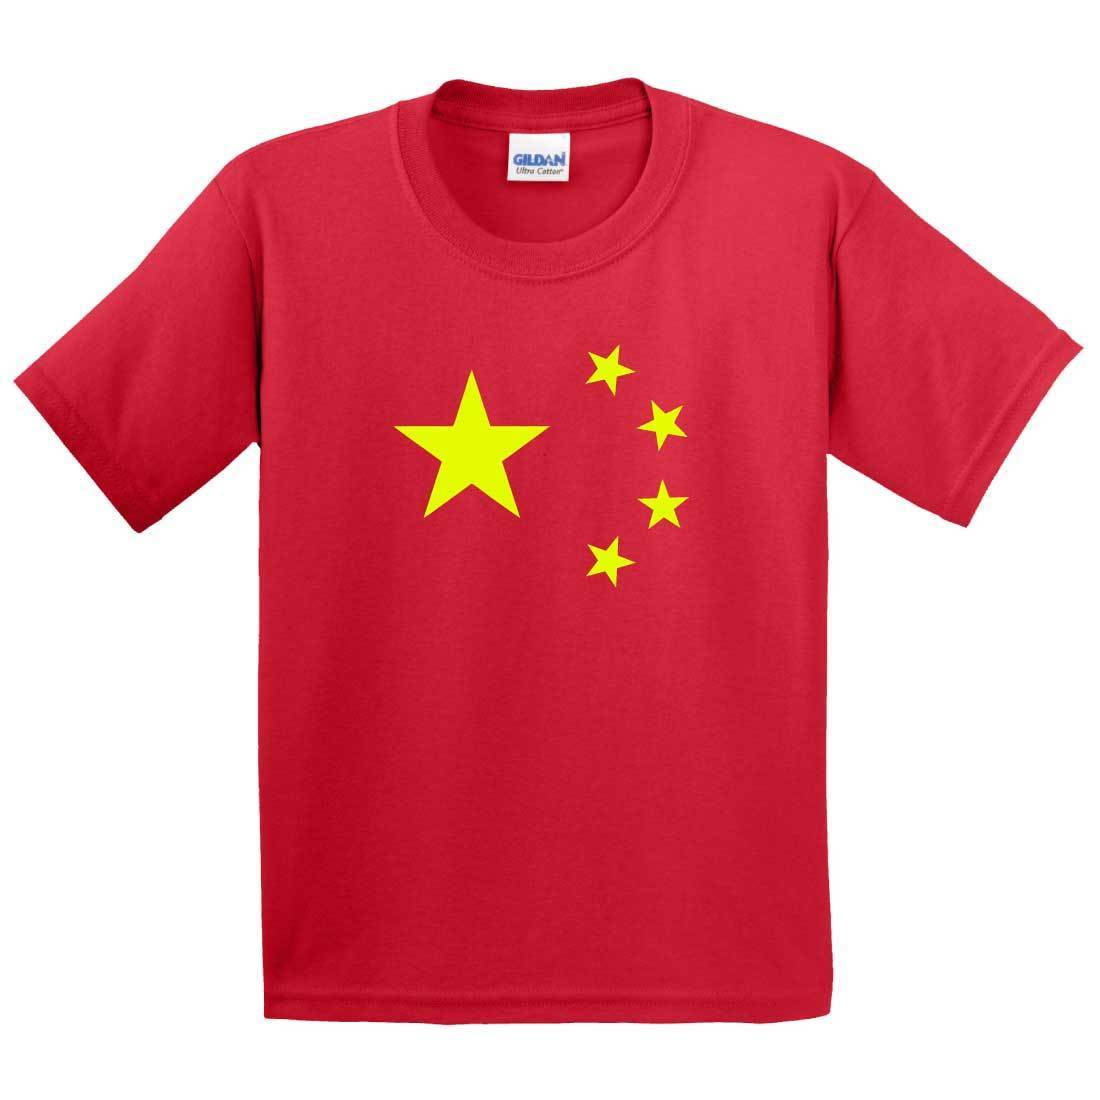 China T Shirt - Red With Yellow Stars - As On The Chinese Flag - Adult Childrens